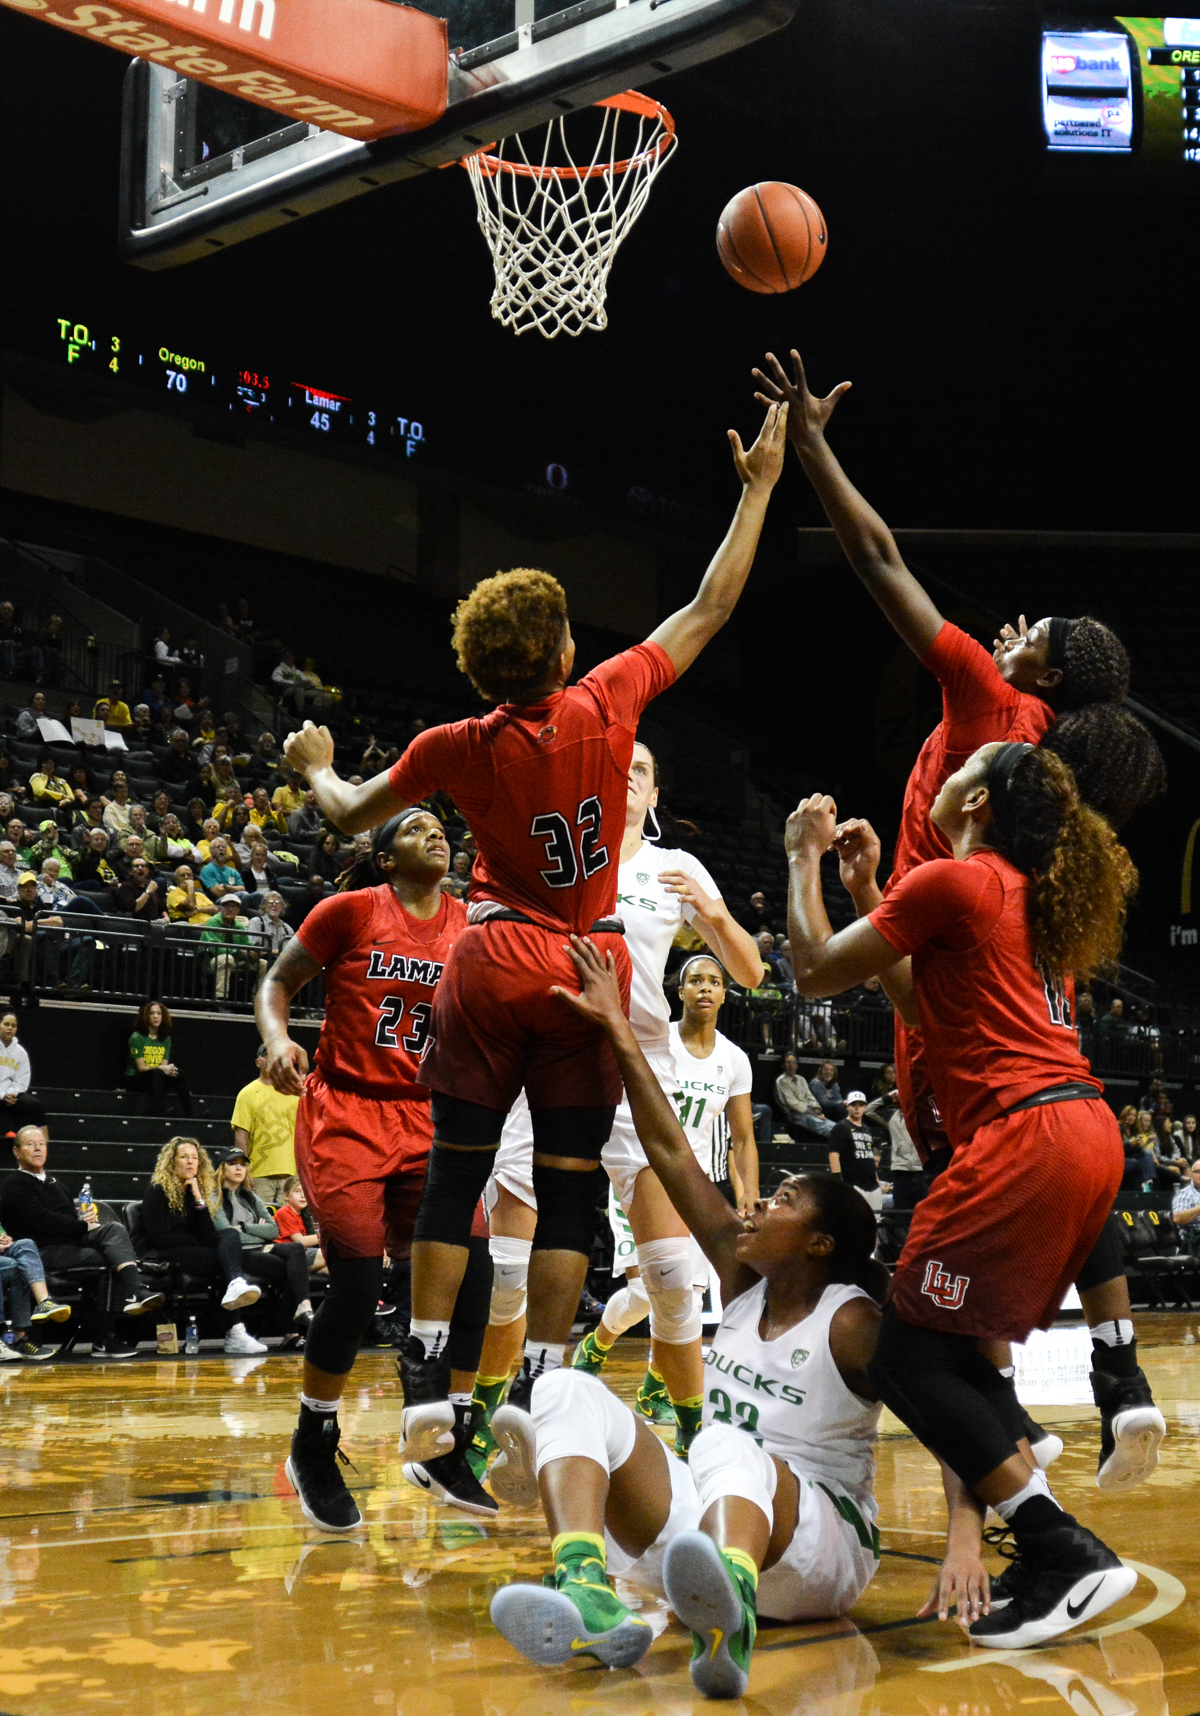 Ducks Oti Gildon (#32) gets knocked down while two Cardinal defenders fight for the ball over her. The Oregon Ducks women's basketball team won their season opener against the Lamar Cardinals 84-67. Photo by Jacob Smith, Oregon News Lab